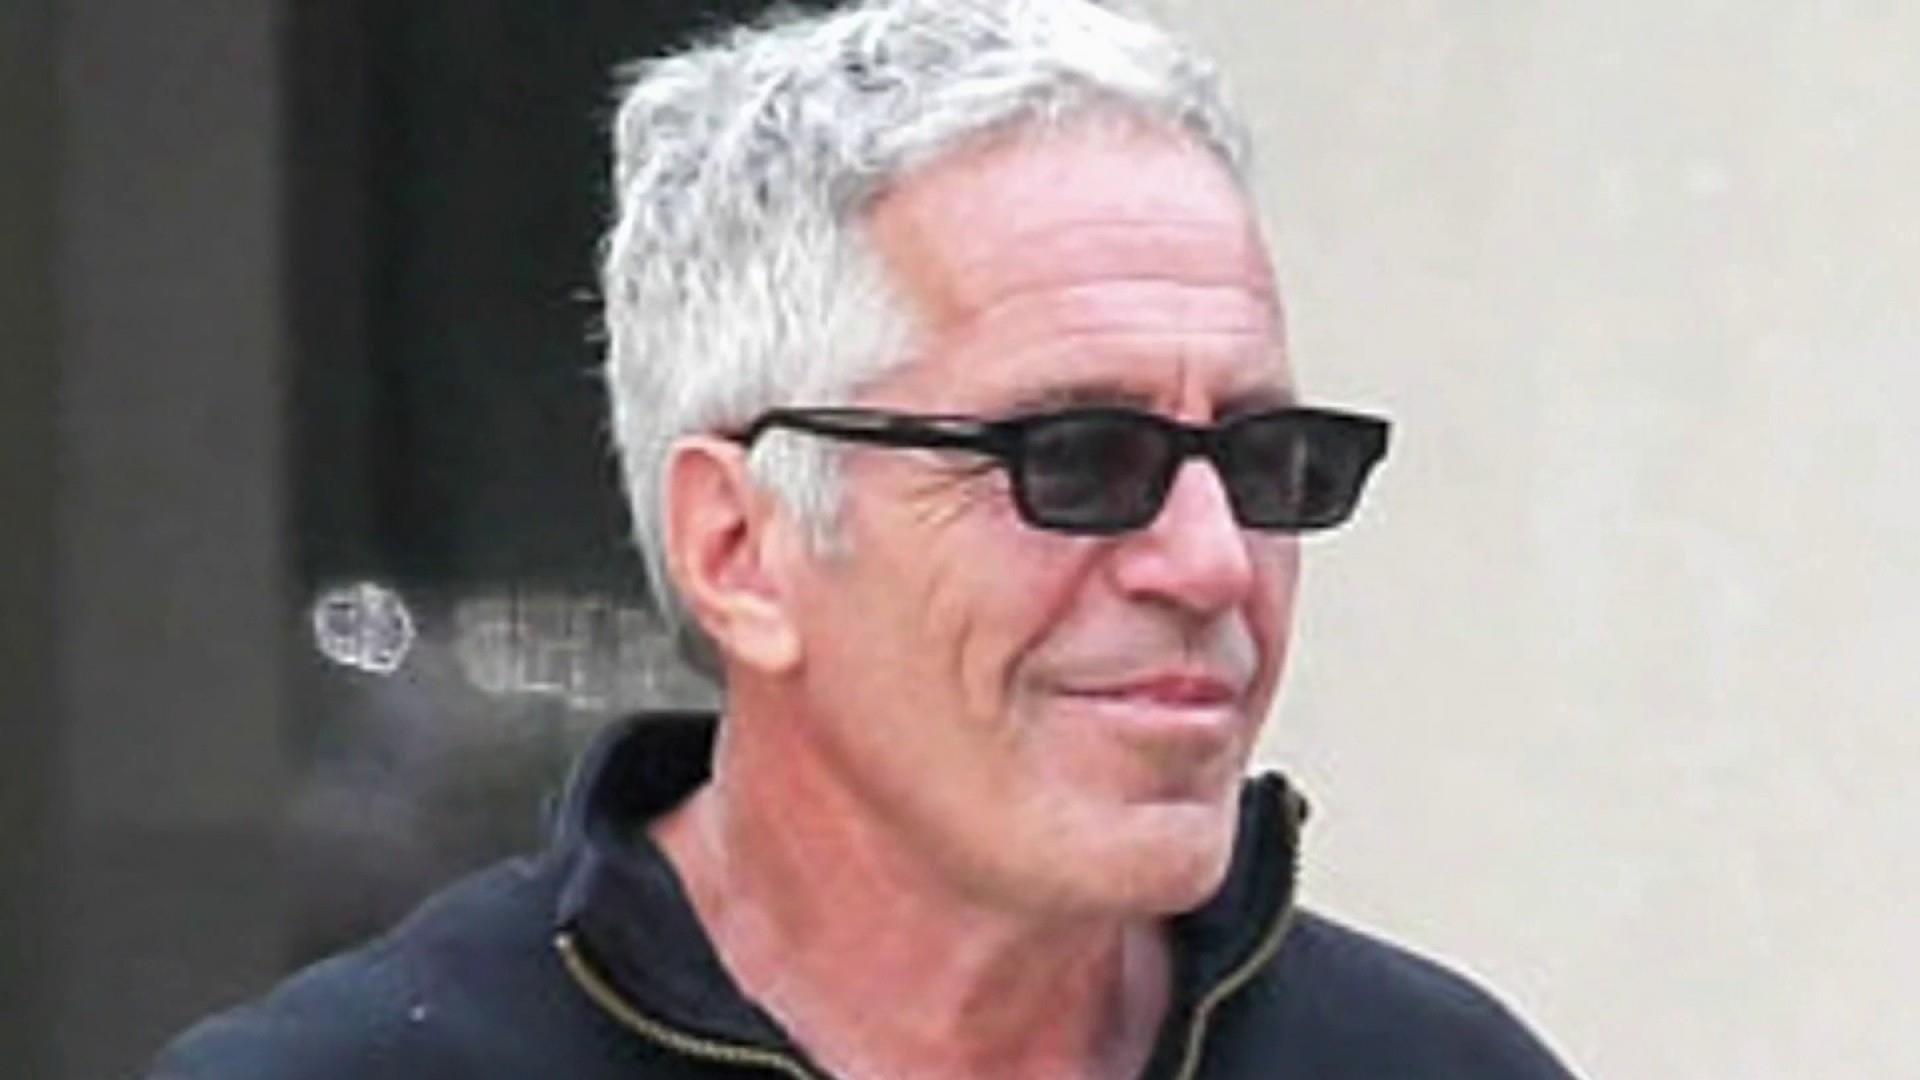 Jeffrey Epstein had cash, diamonds and a foreign passport stashed in safe, prosecutors say